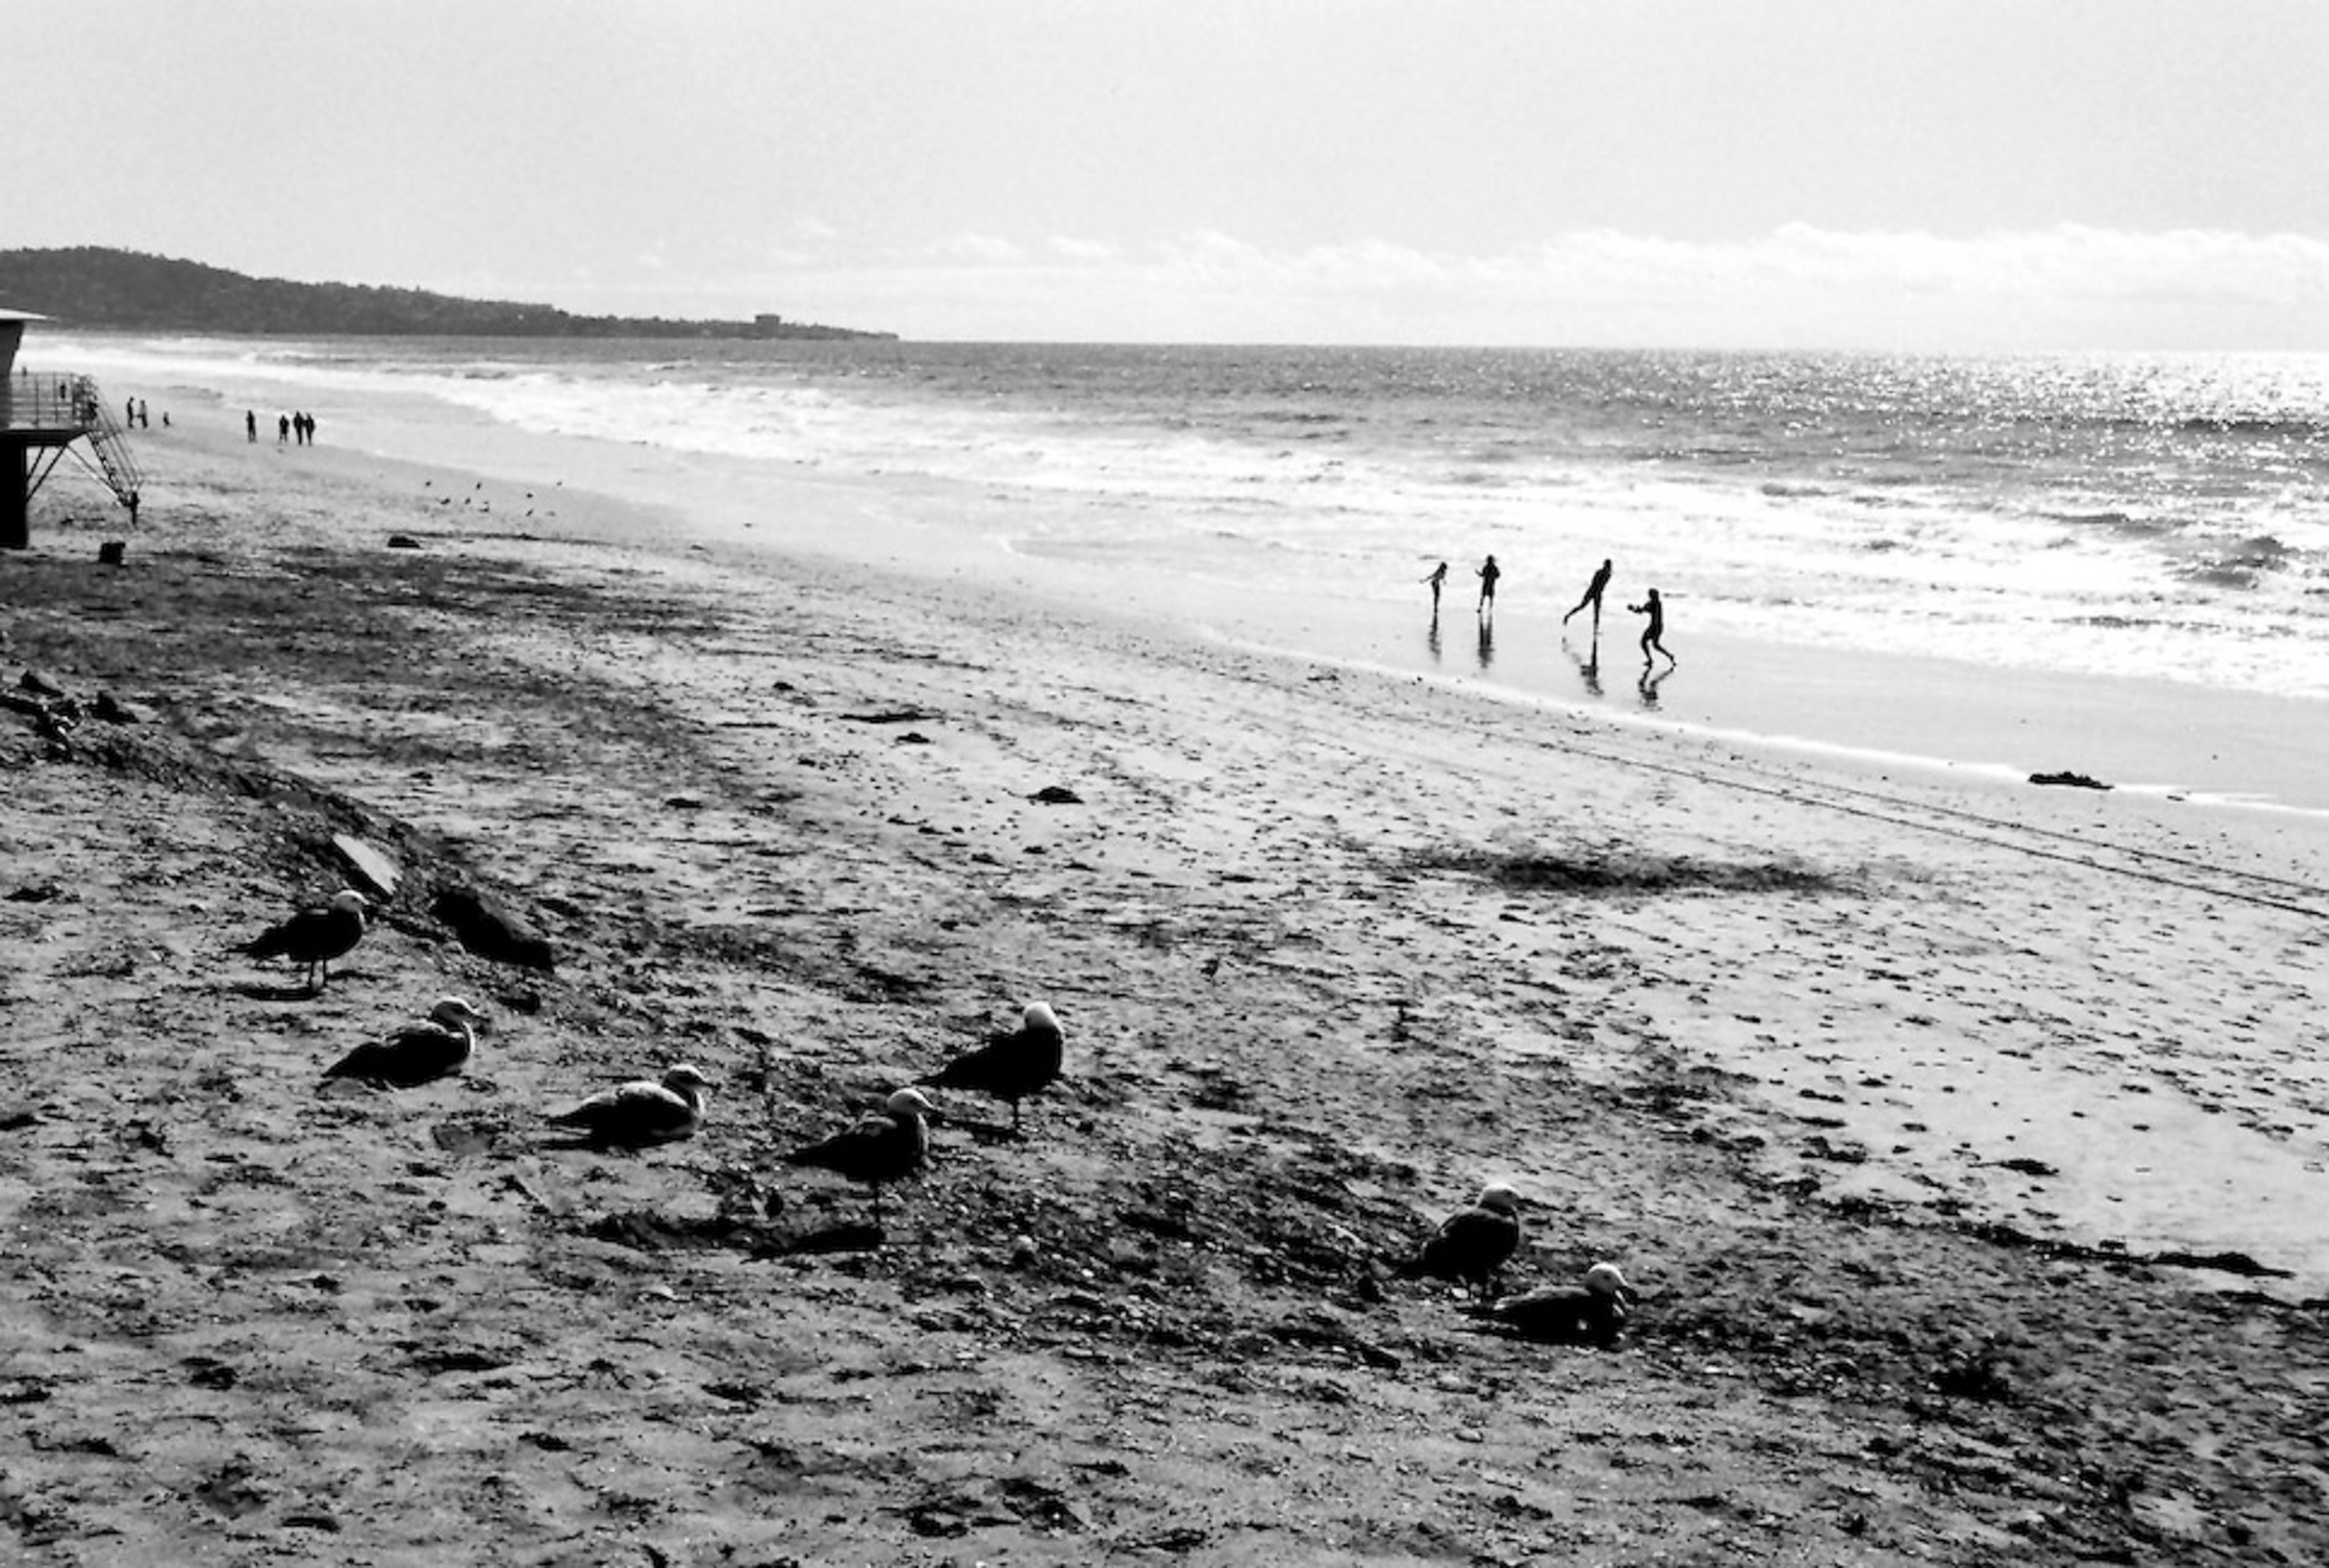 20071208-bw_beach_children_playing_silouette_.jpg